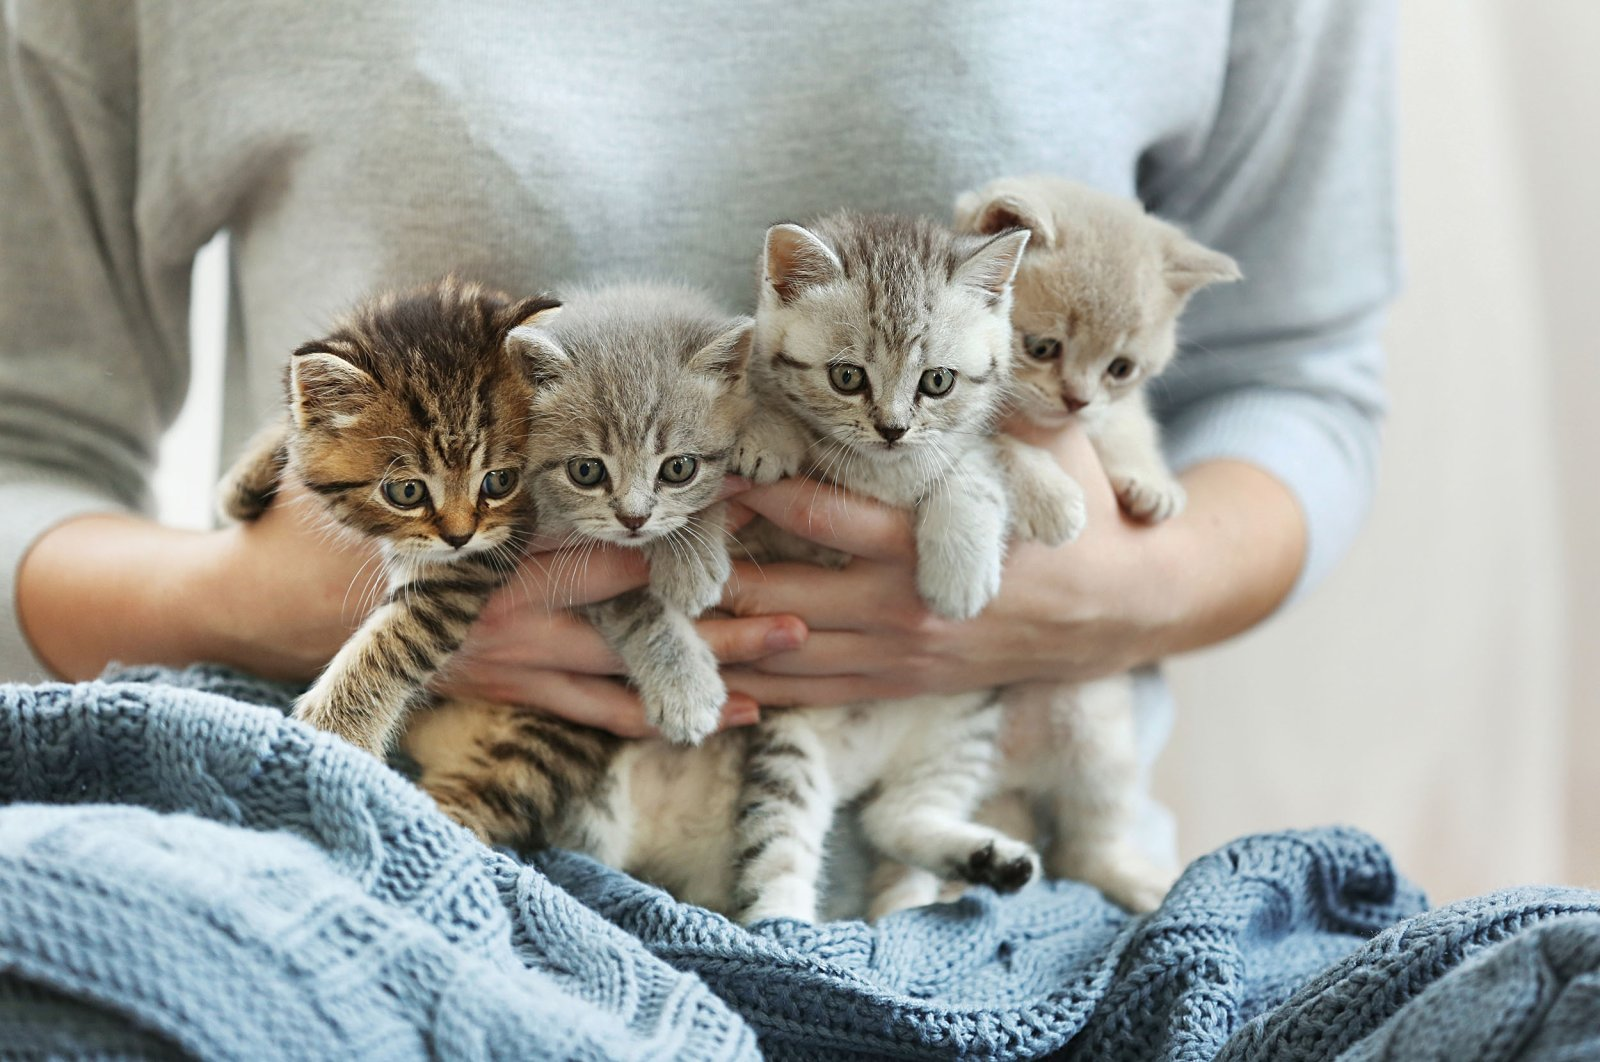 A woman holding small cute kittens in this undated file photo. (Shutterstock File Photo)